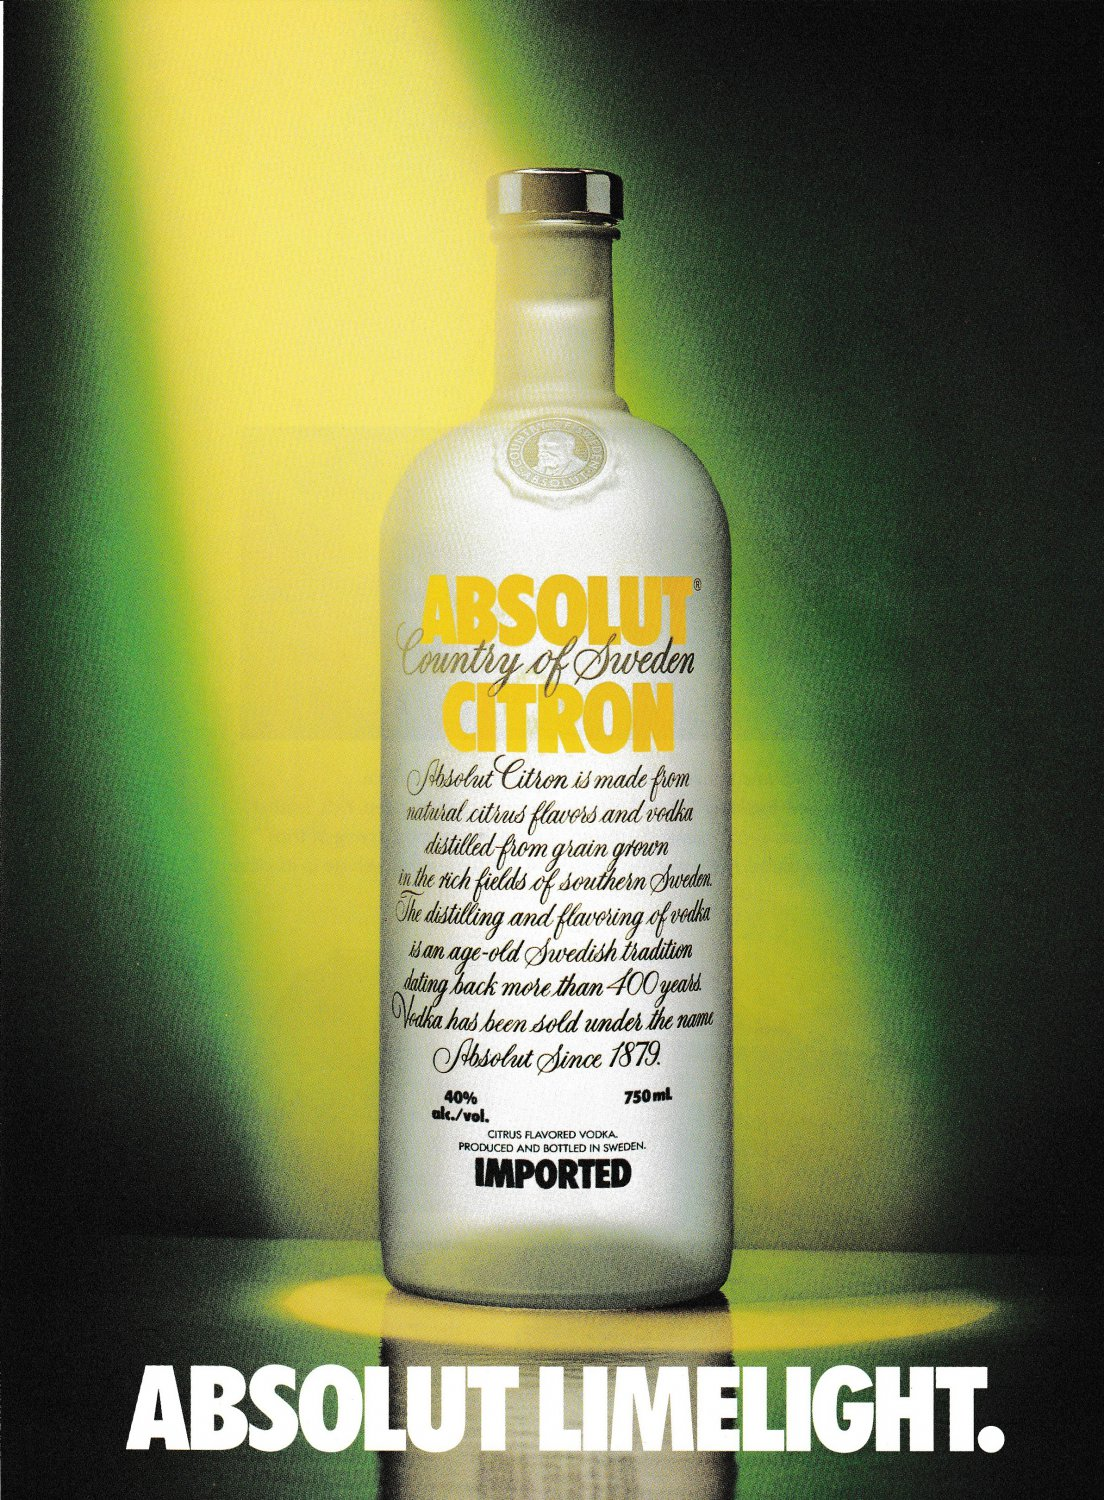 ABSOLUT LIMELIGHT w/ ABSOLUT FACTS Sidebar Canadian Vodka Ads - 2 Pages